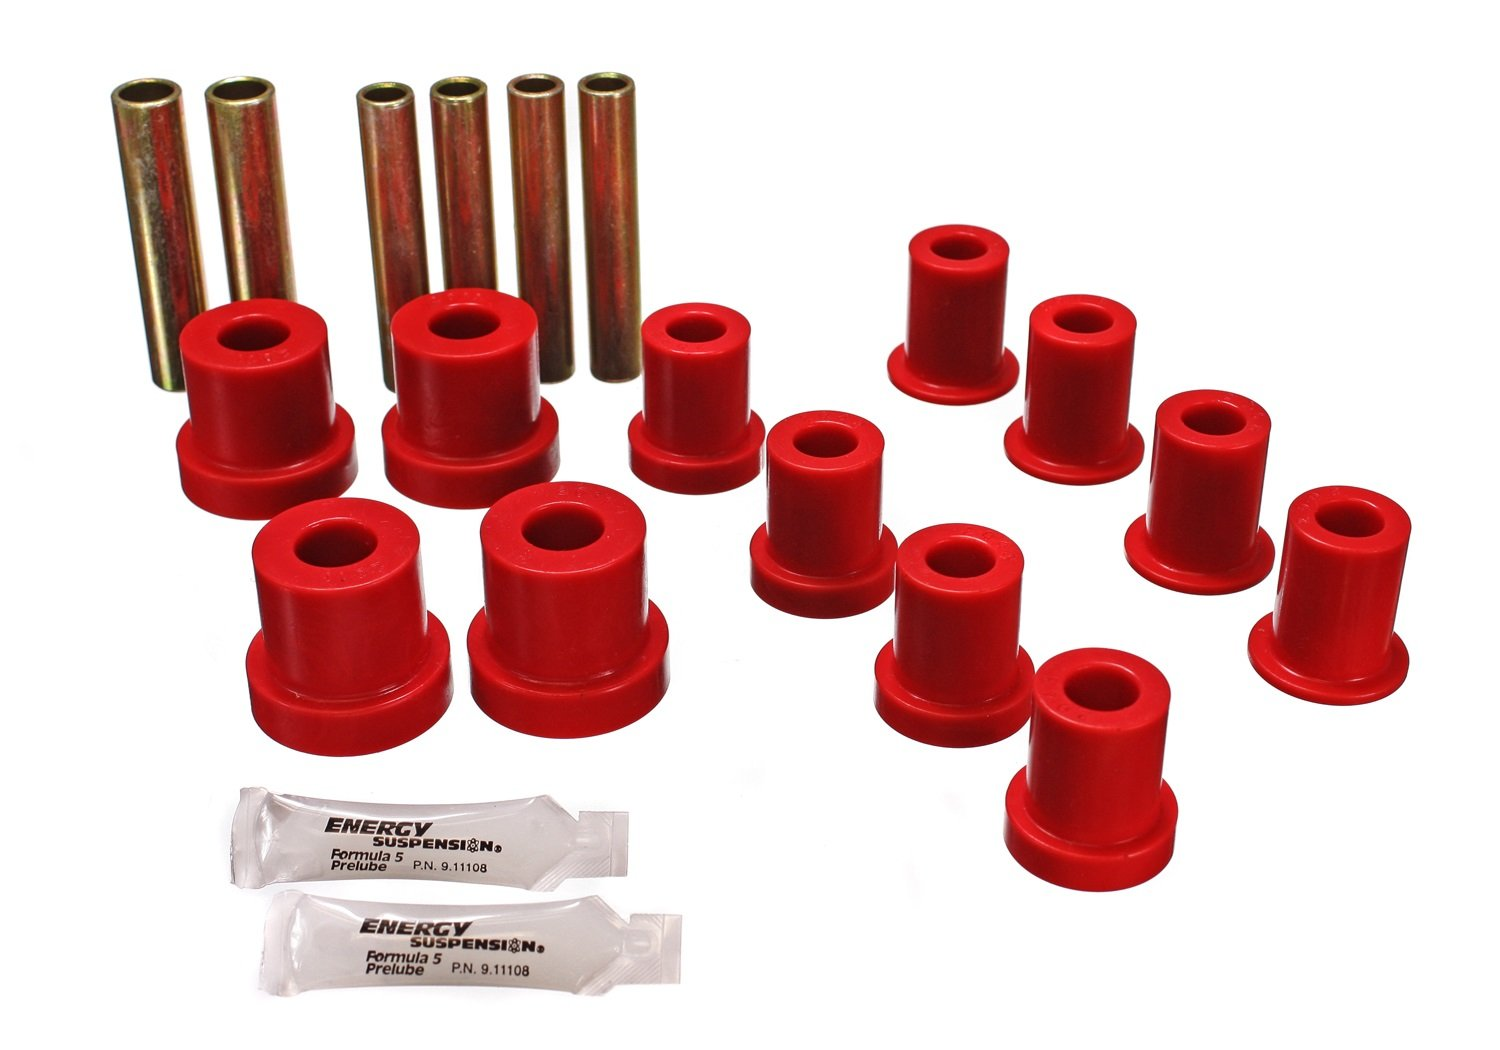 Energy Suspension 3.2112R A.M Front Spring Bushing for GM 4X